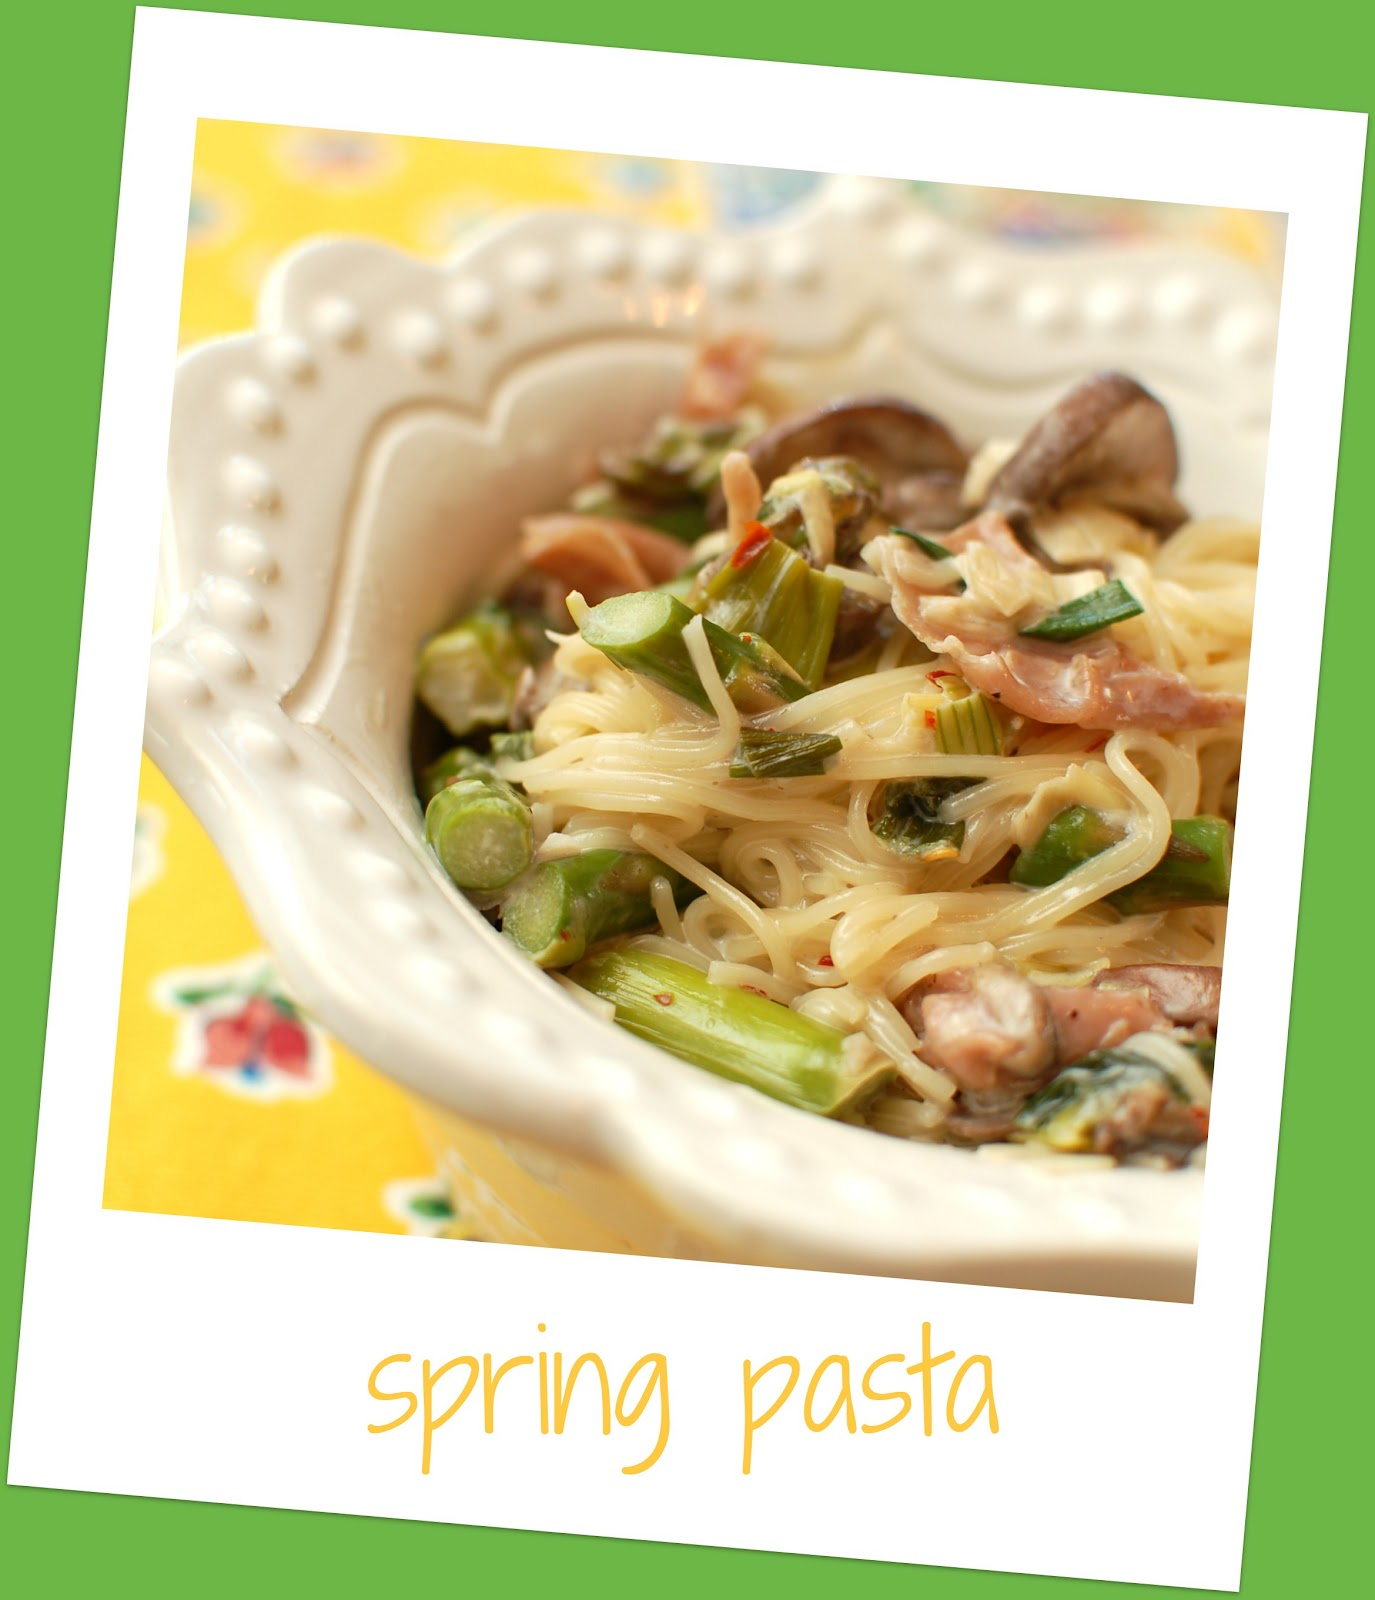 Spring Pasta with Prosciutto, Leeks, Asparagus and Mushrooms